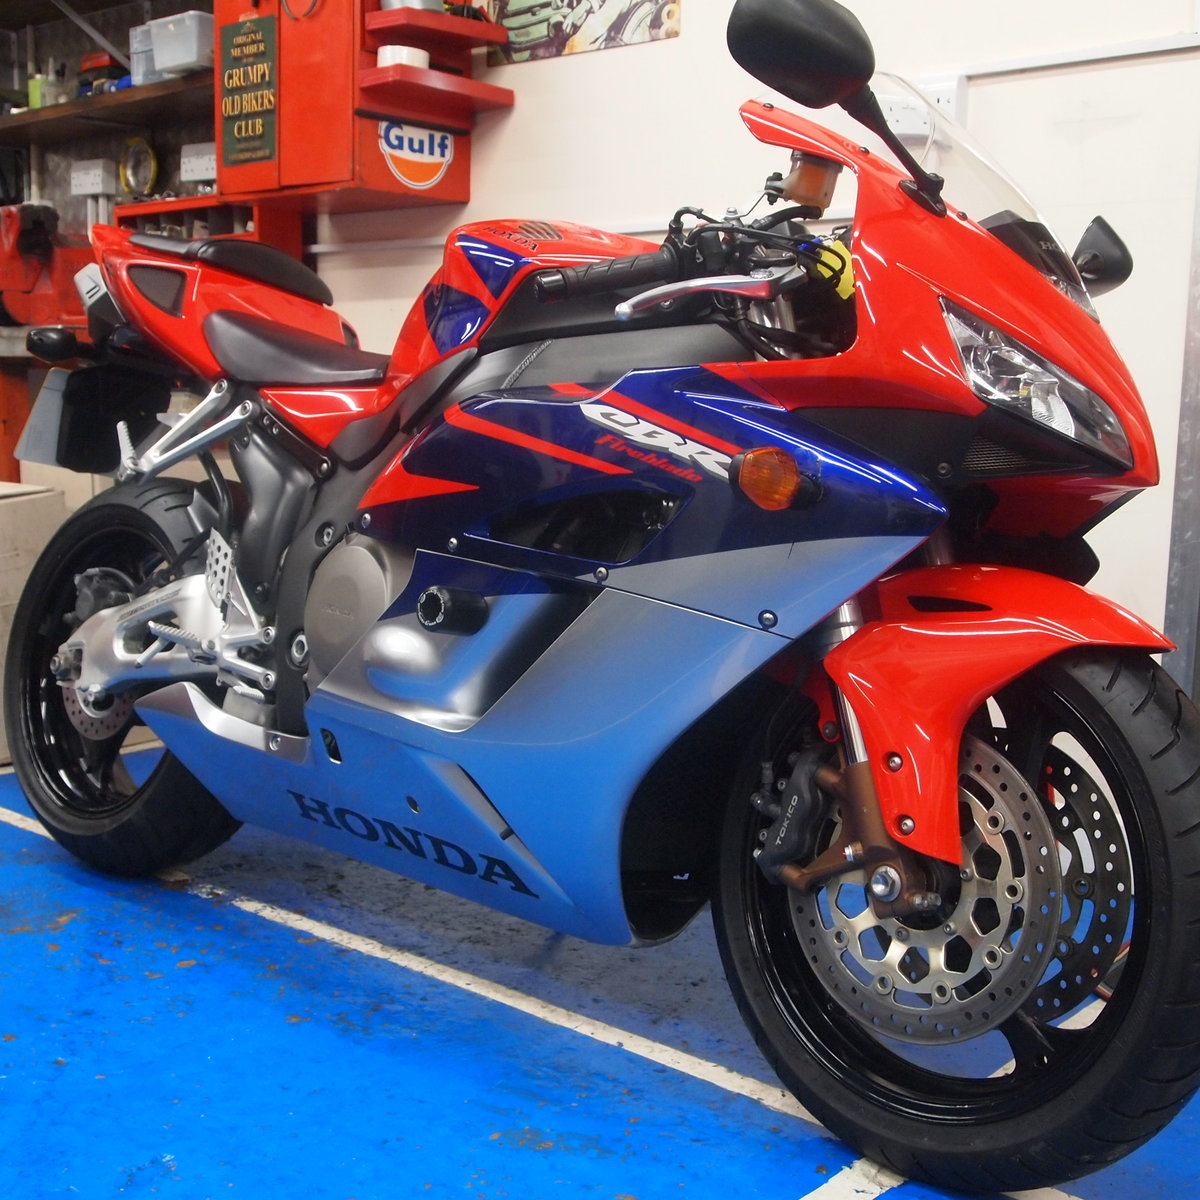 2006 Honda CBR1000RR5, FSH, Low Mileage, RESERVED FOR KARL. SOLD (picture 1 of 12)